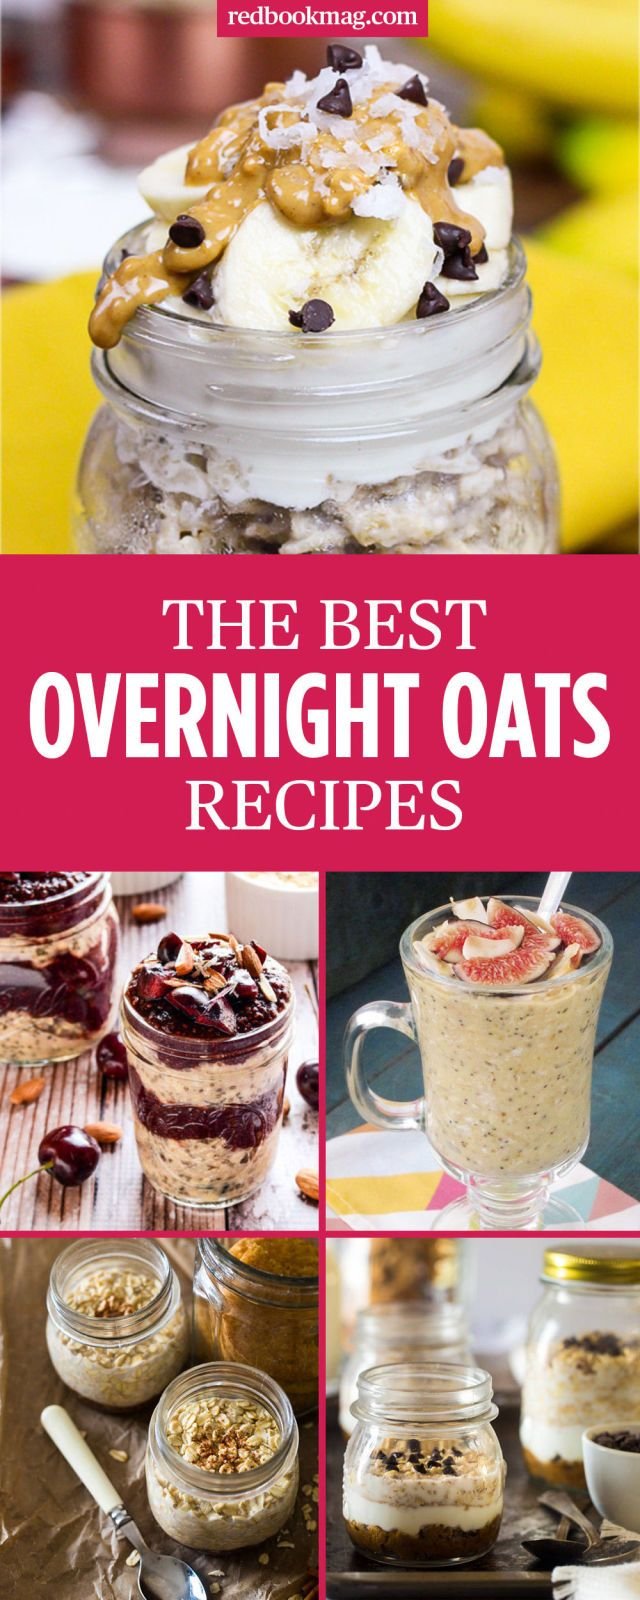 50 Ways to Make Overnight Oats and Totally Reboot Your Morning